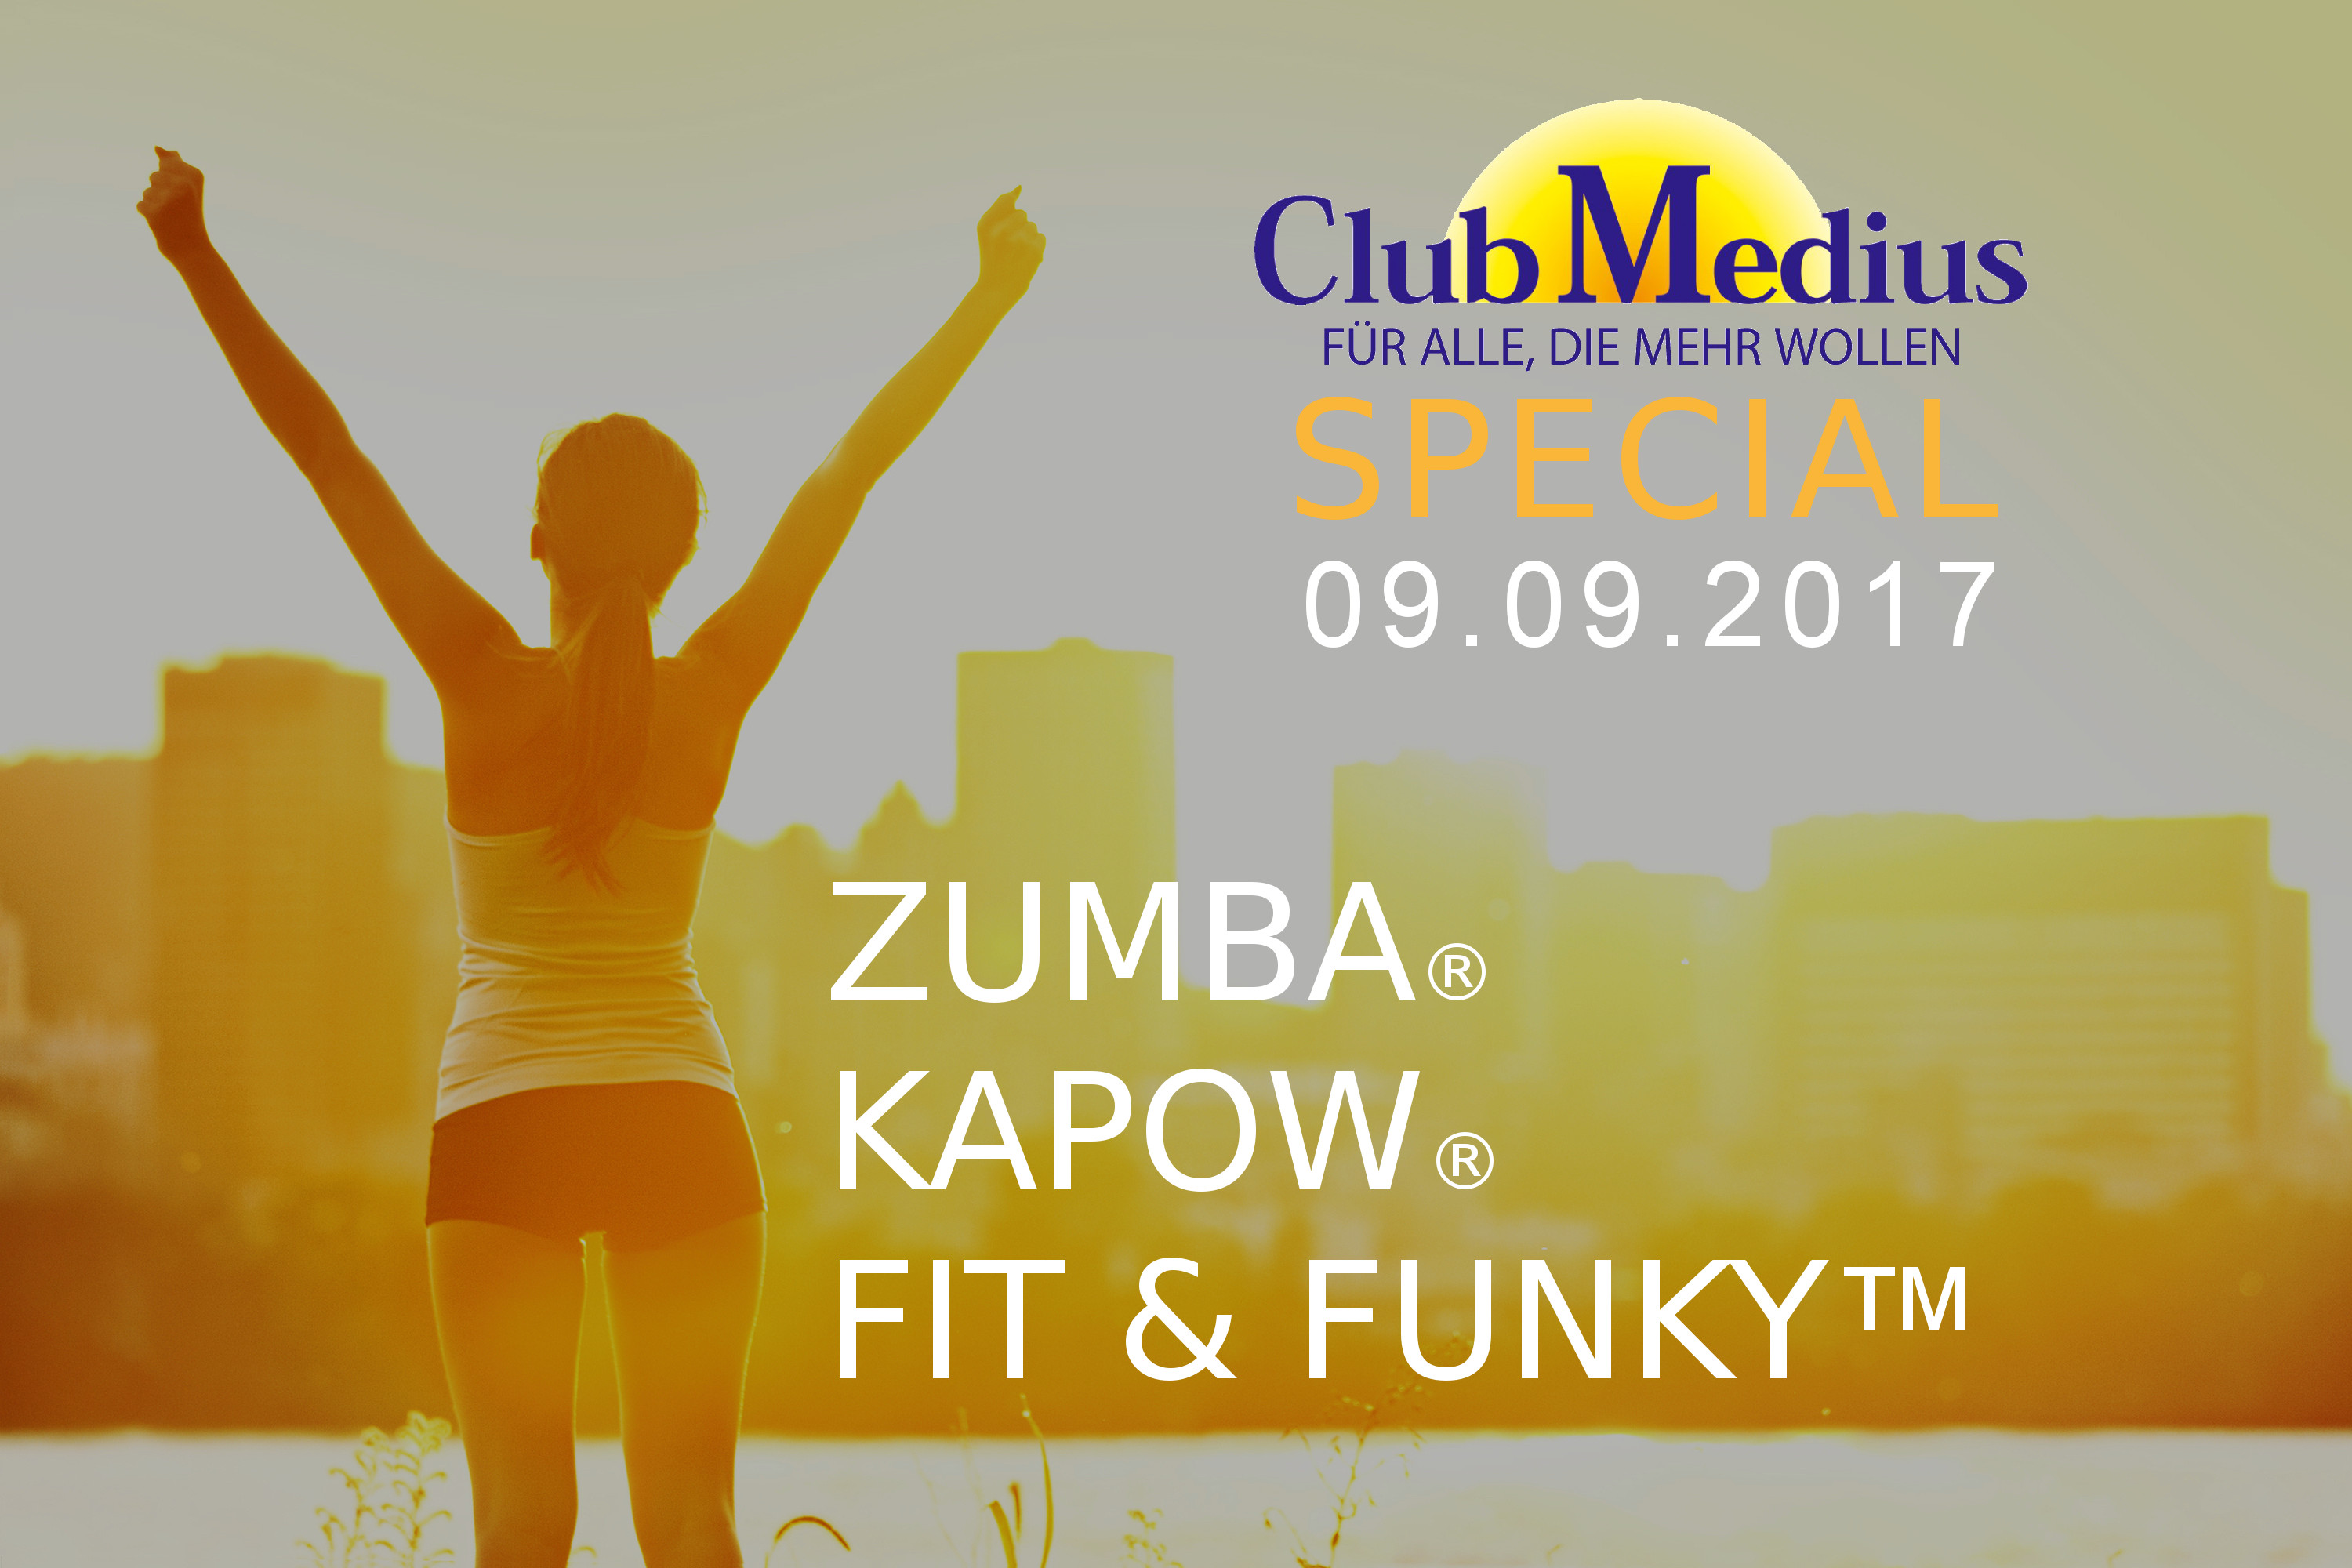 Club Medius Special Im September 2017